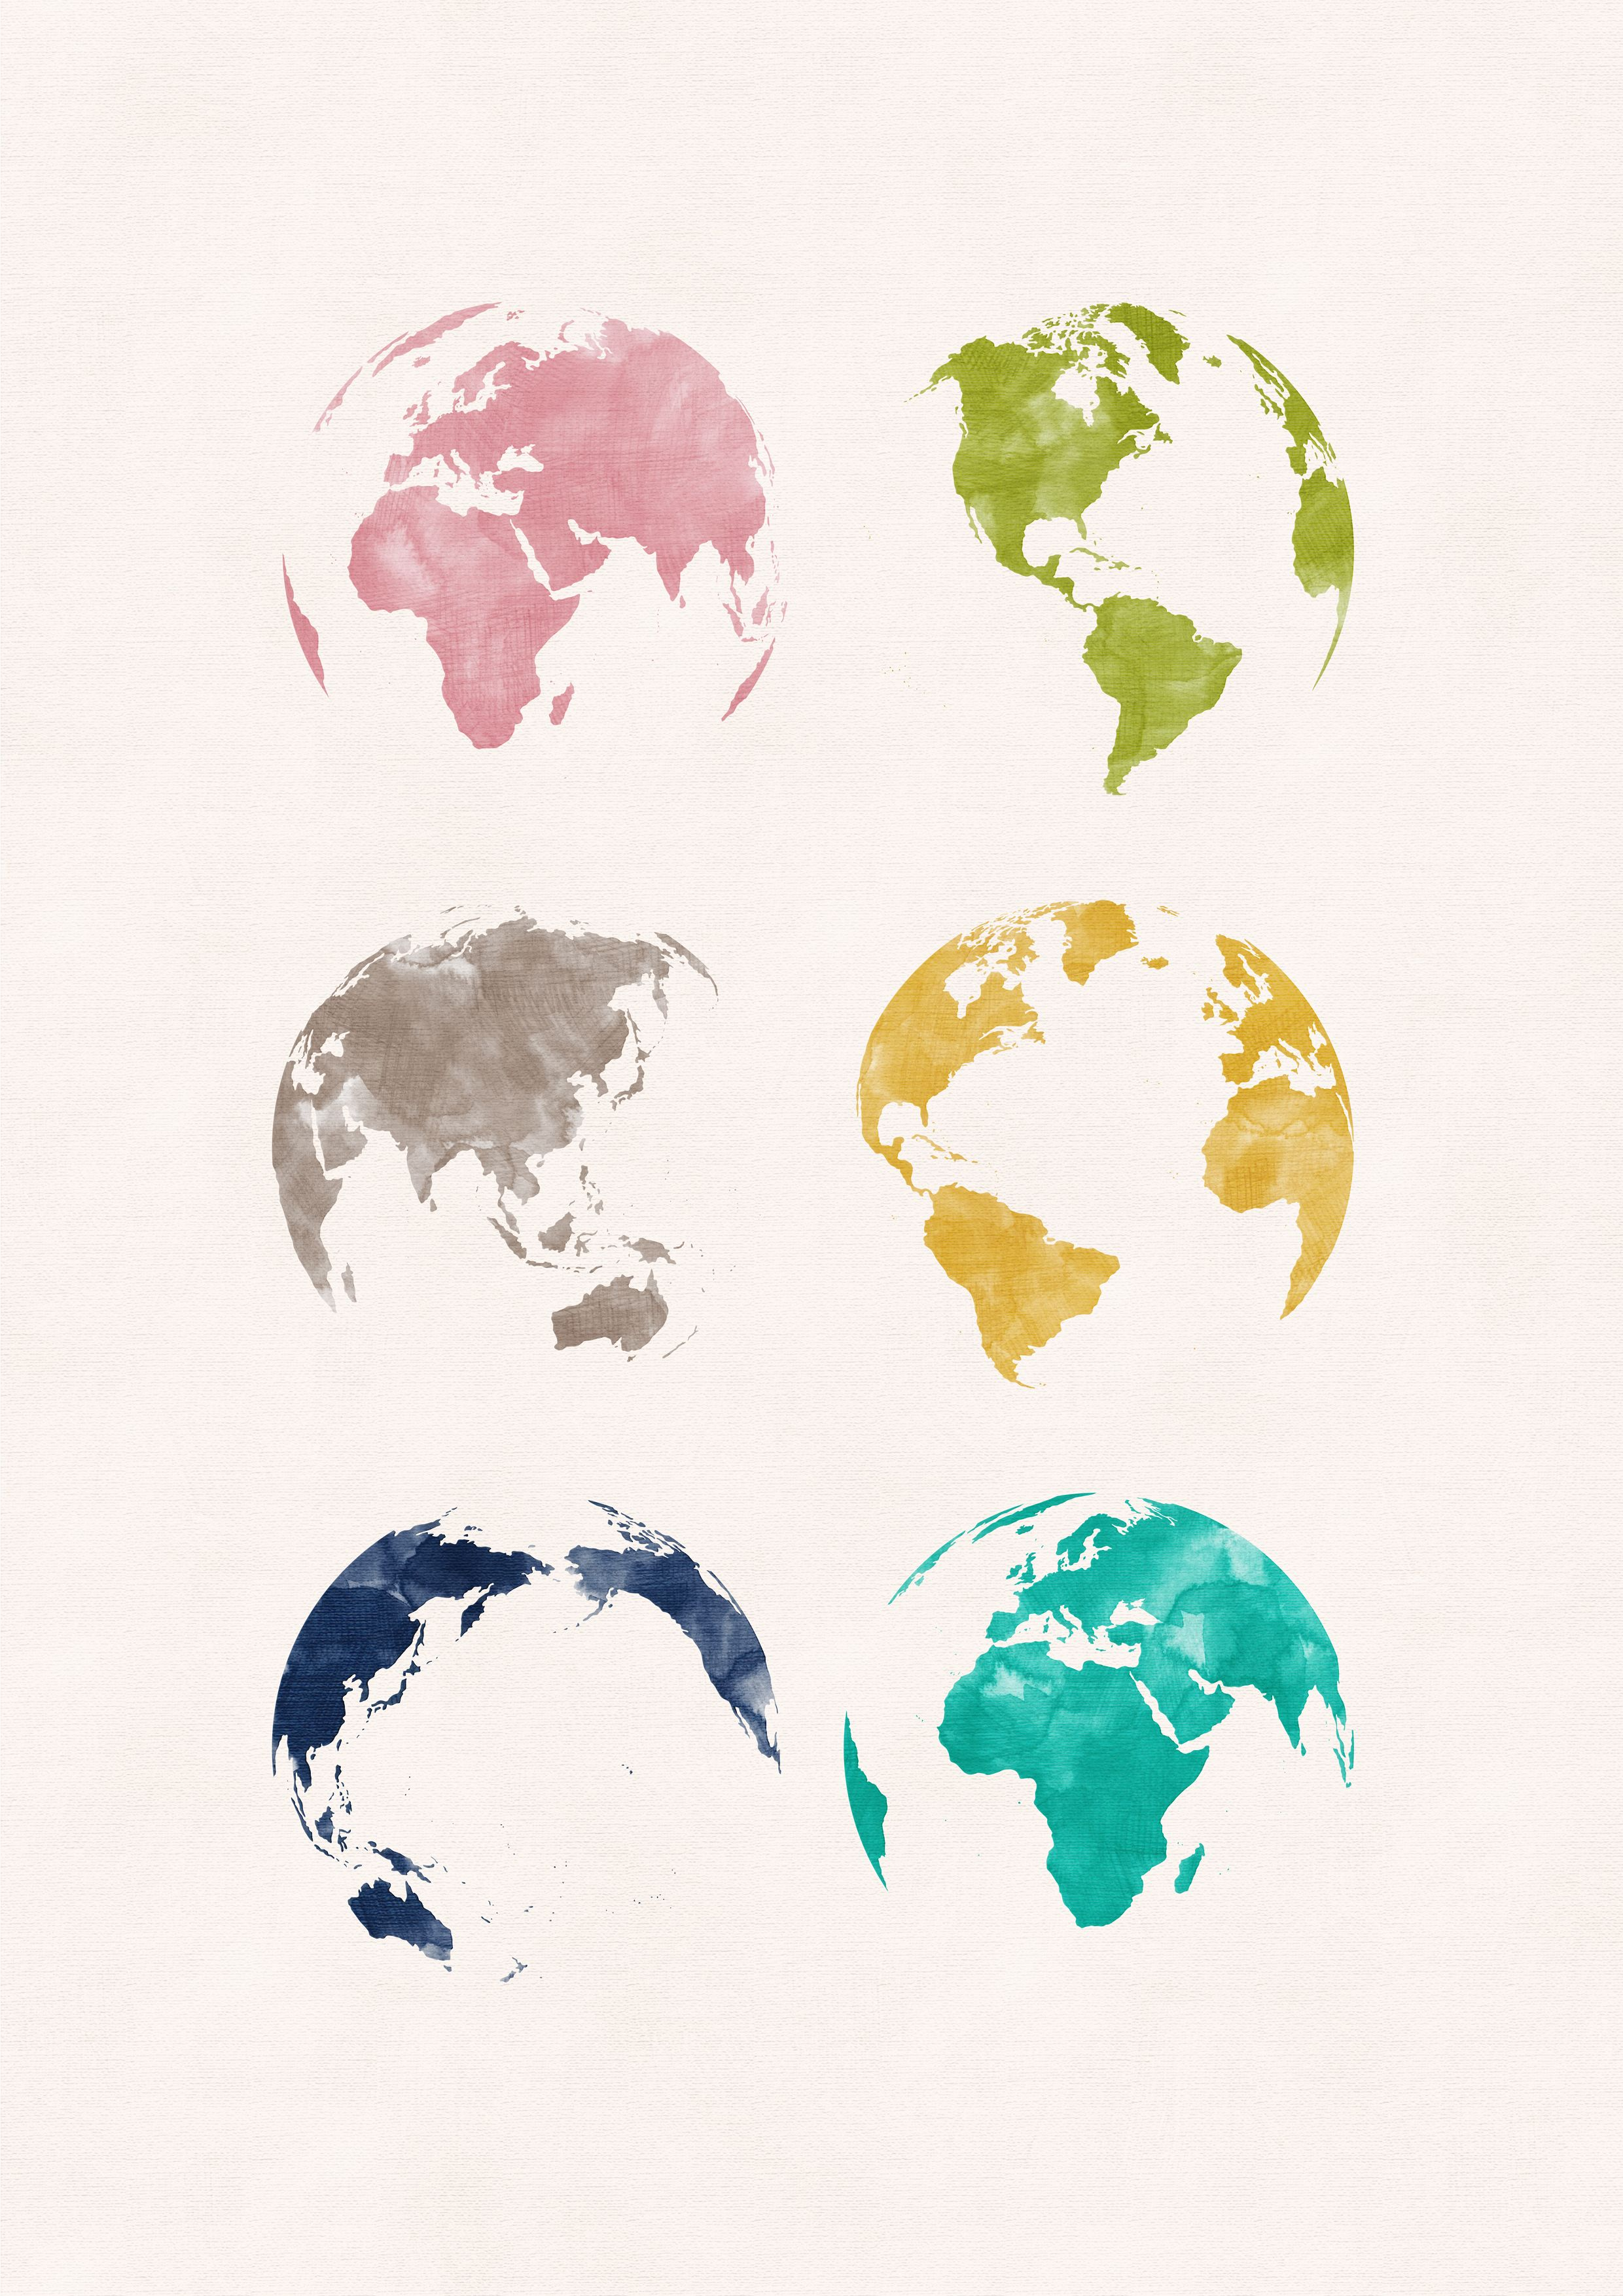 World map print download world map poster watercolor downloadable world map print print download globe poster world map poster poster watercolor gumiabroncs Image collections